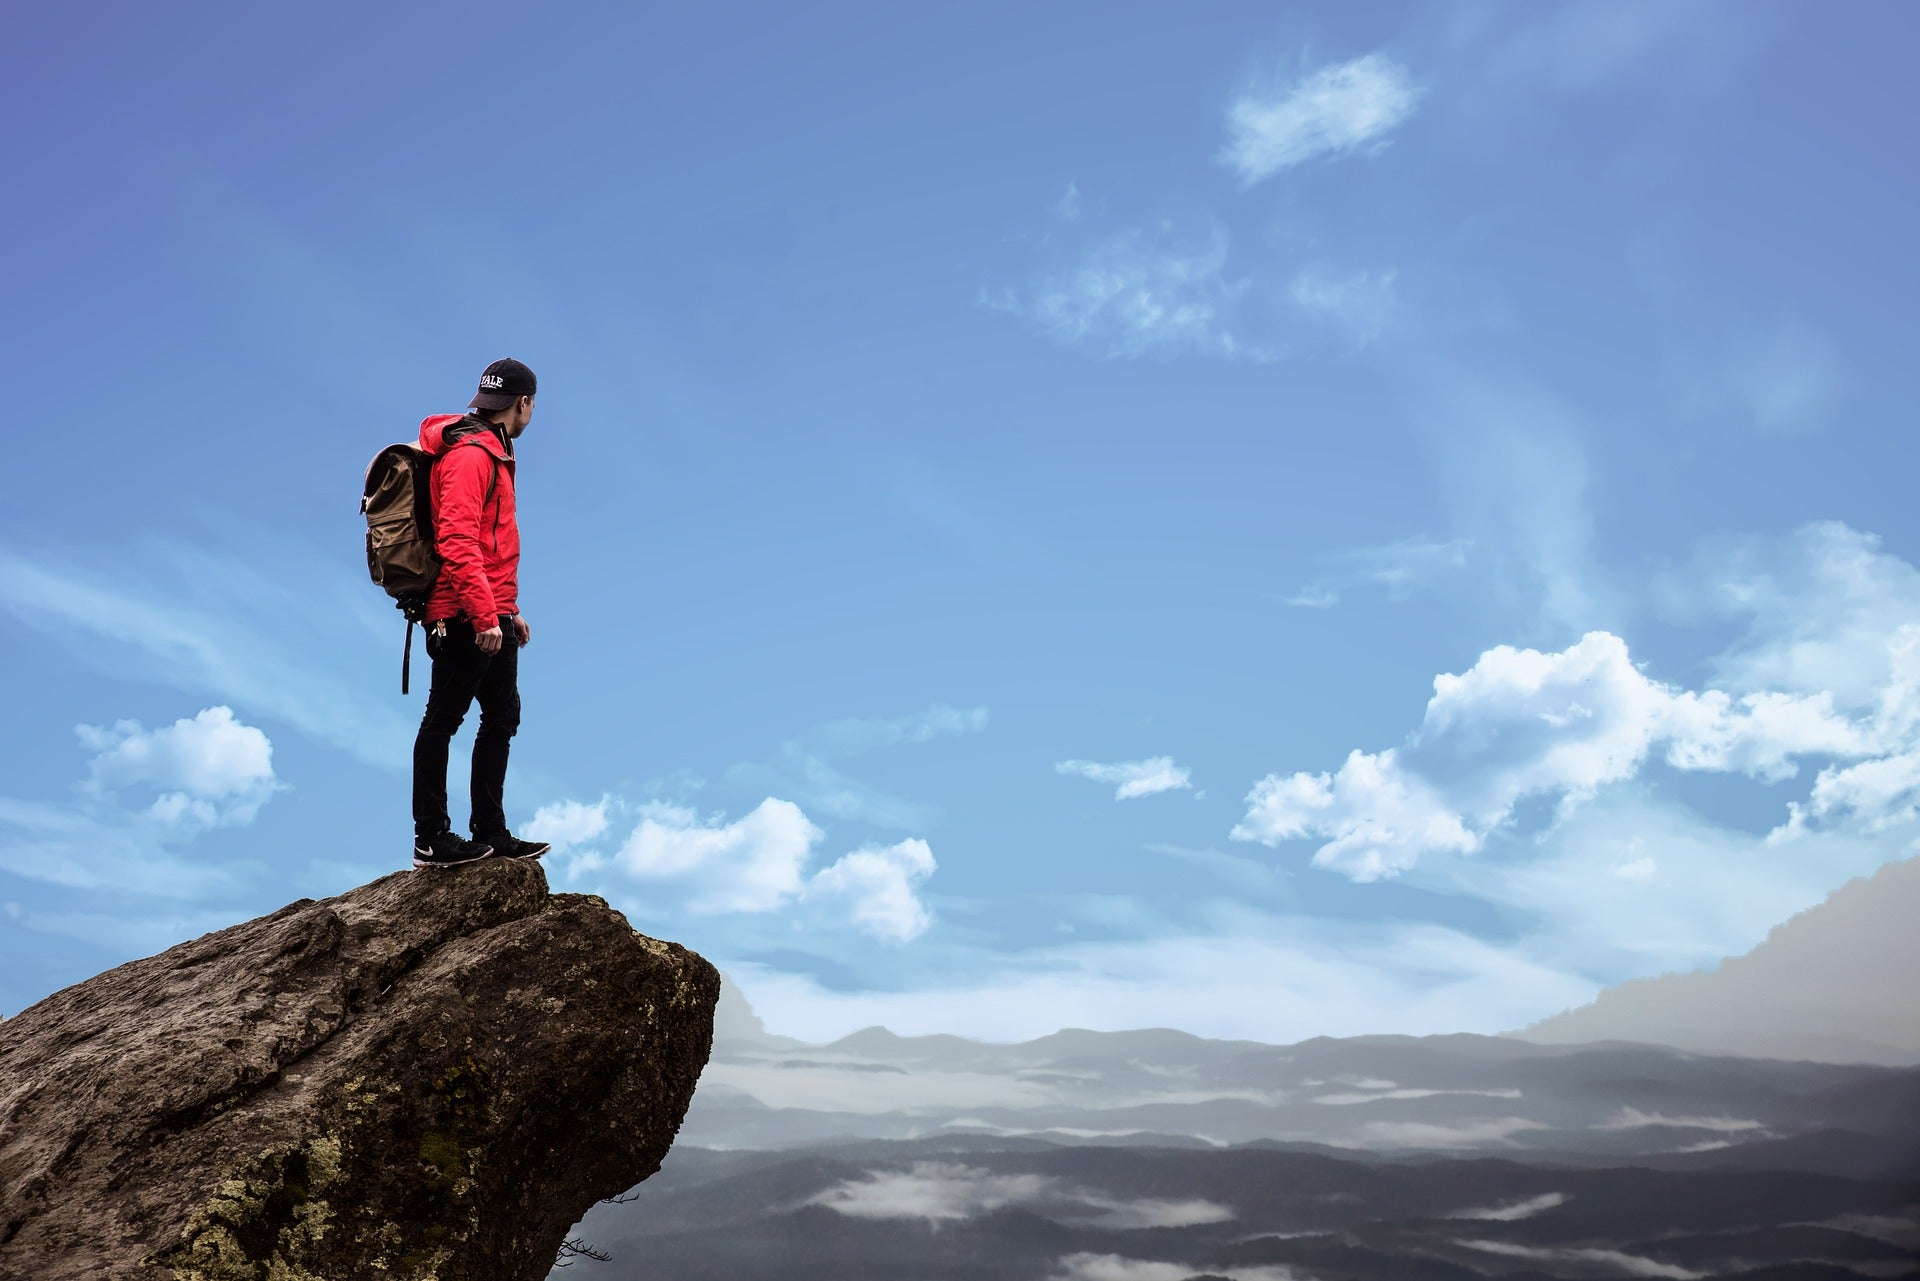 Man wearing backpack standing on high ledge